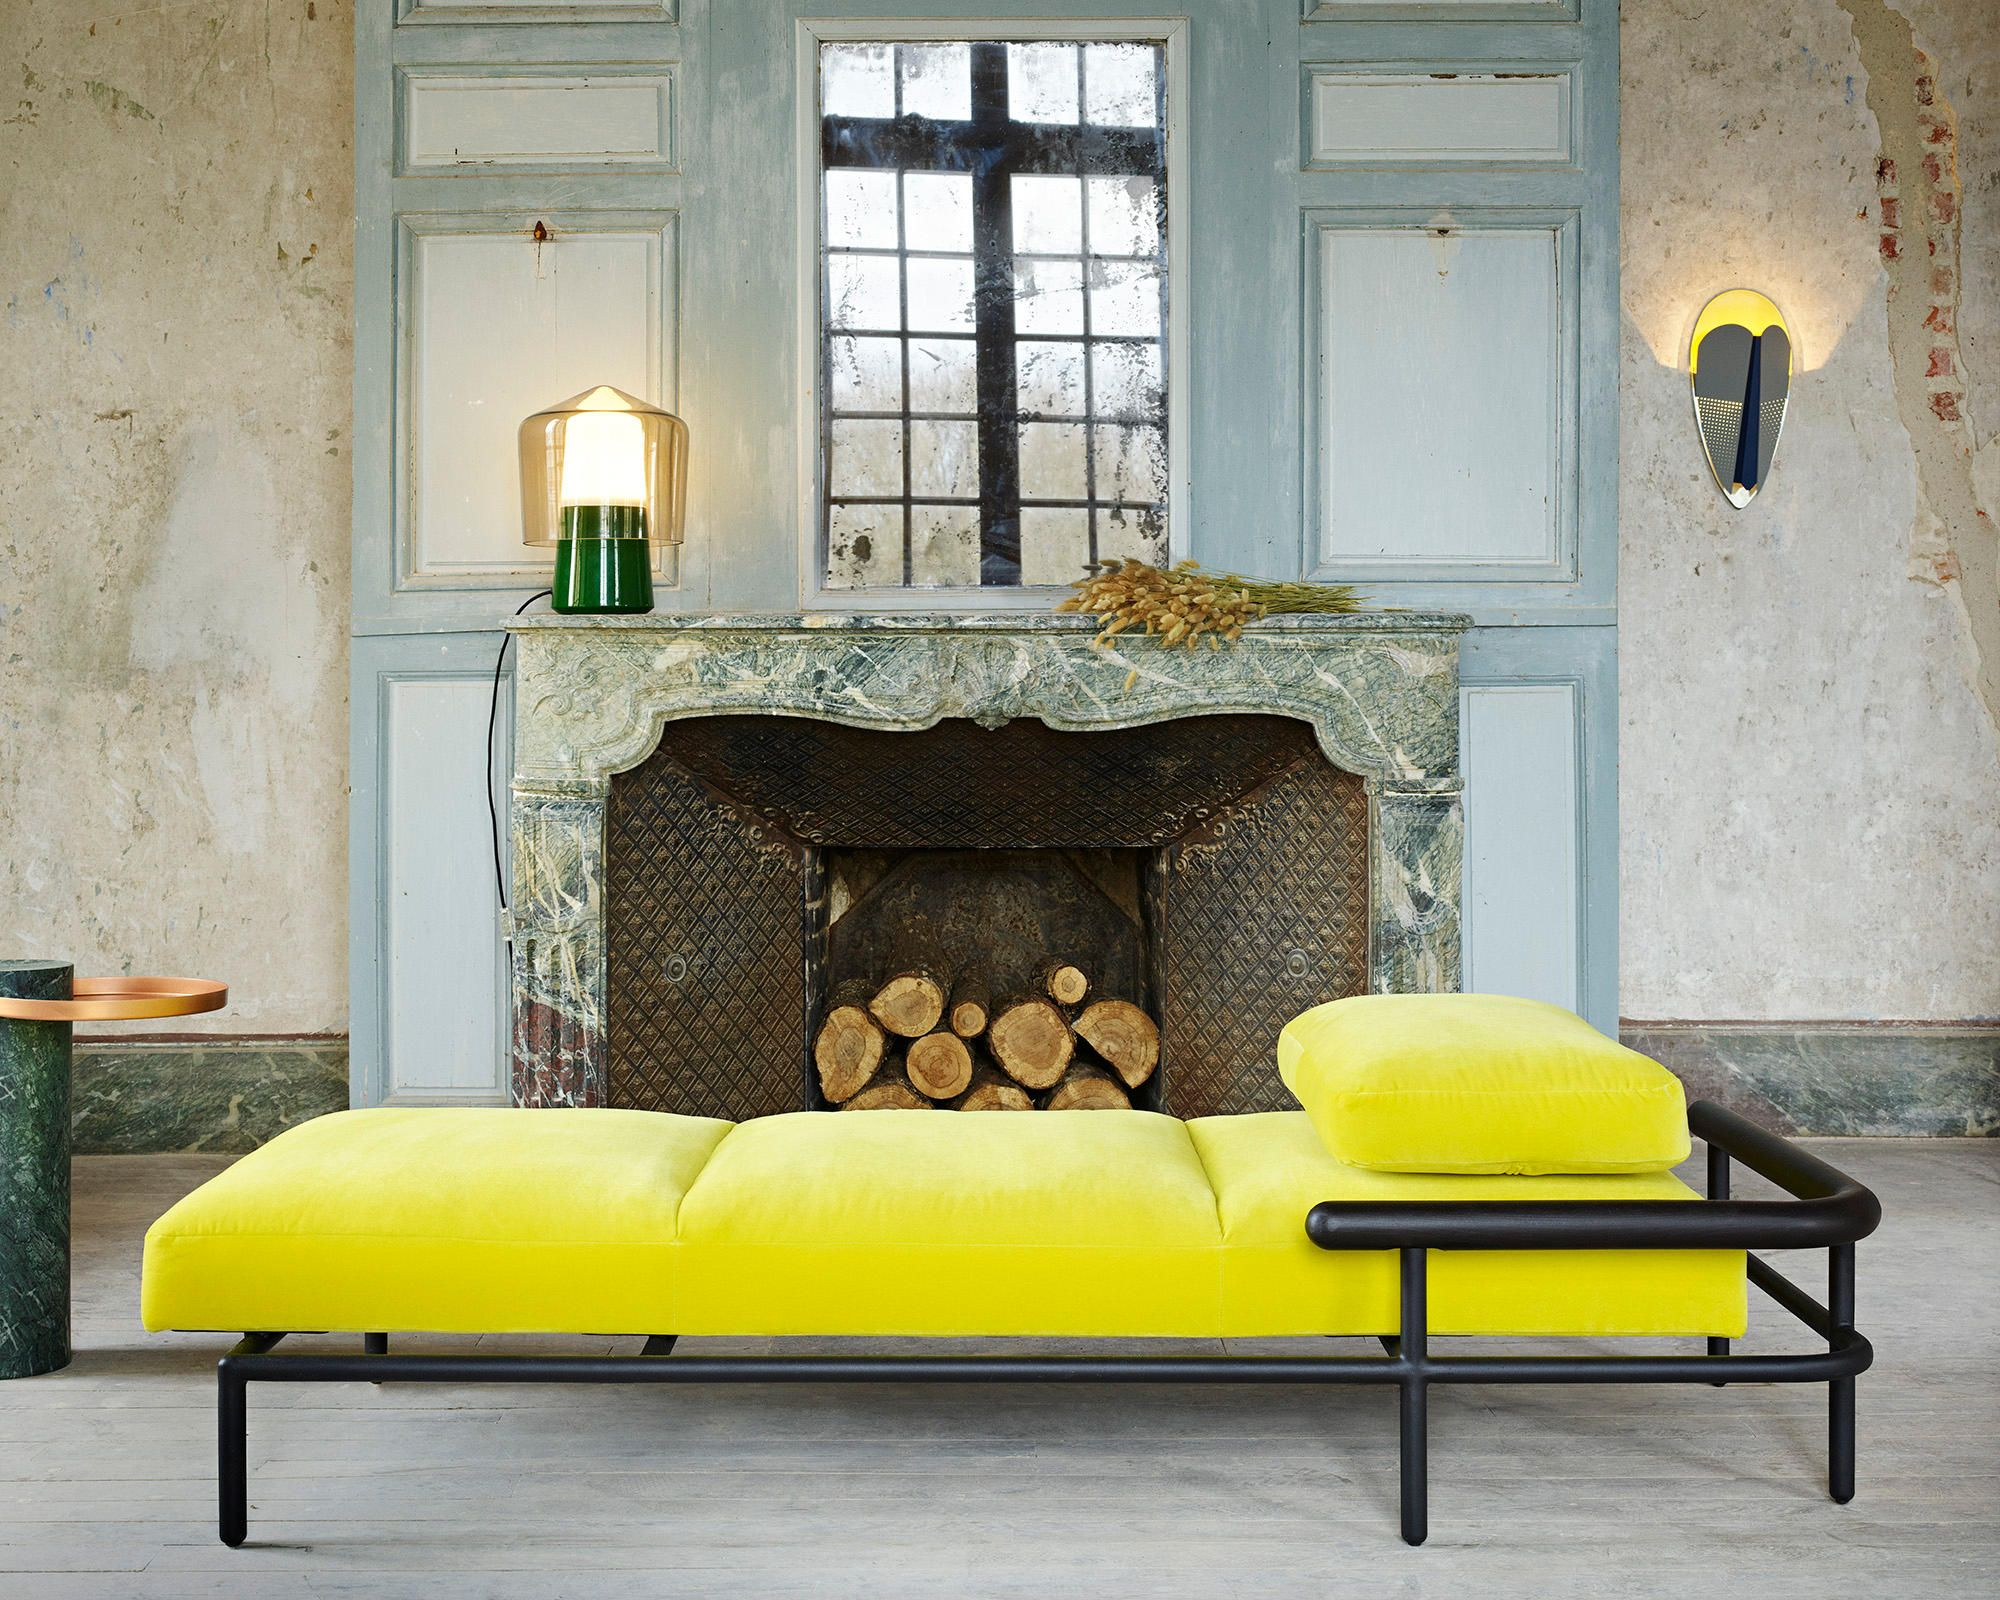 Pick X Ray Daybed By Alain Gilles For La Chance Architonic Nowonarchitonic Interior Design Furniture Beds Daybeds Yellow Comfortable Fabric